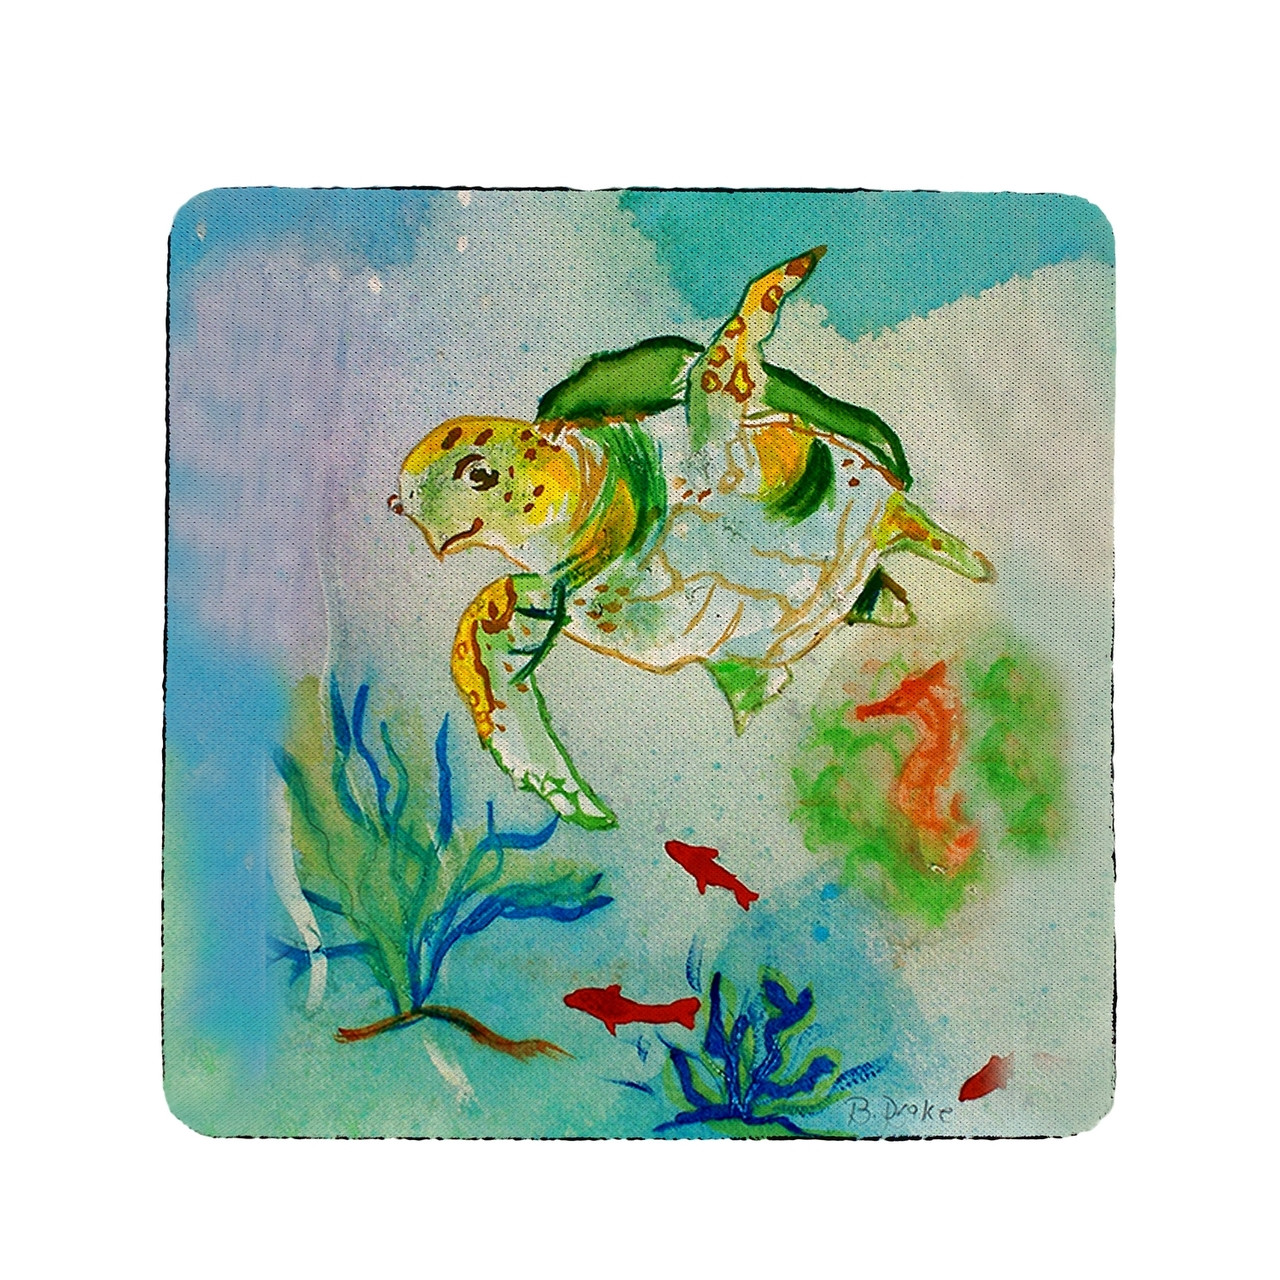 Betsy's Sea Turtle Coasters - Set of 4